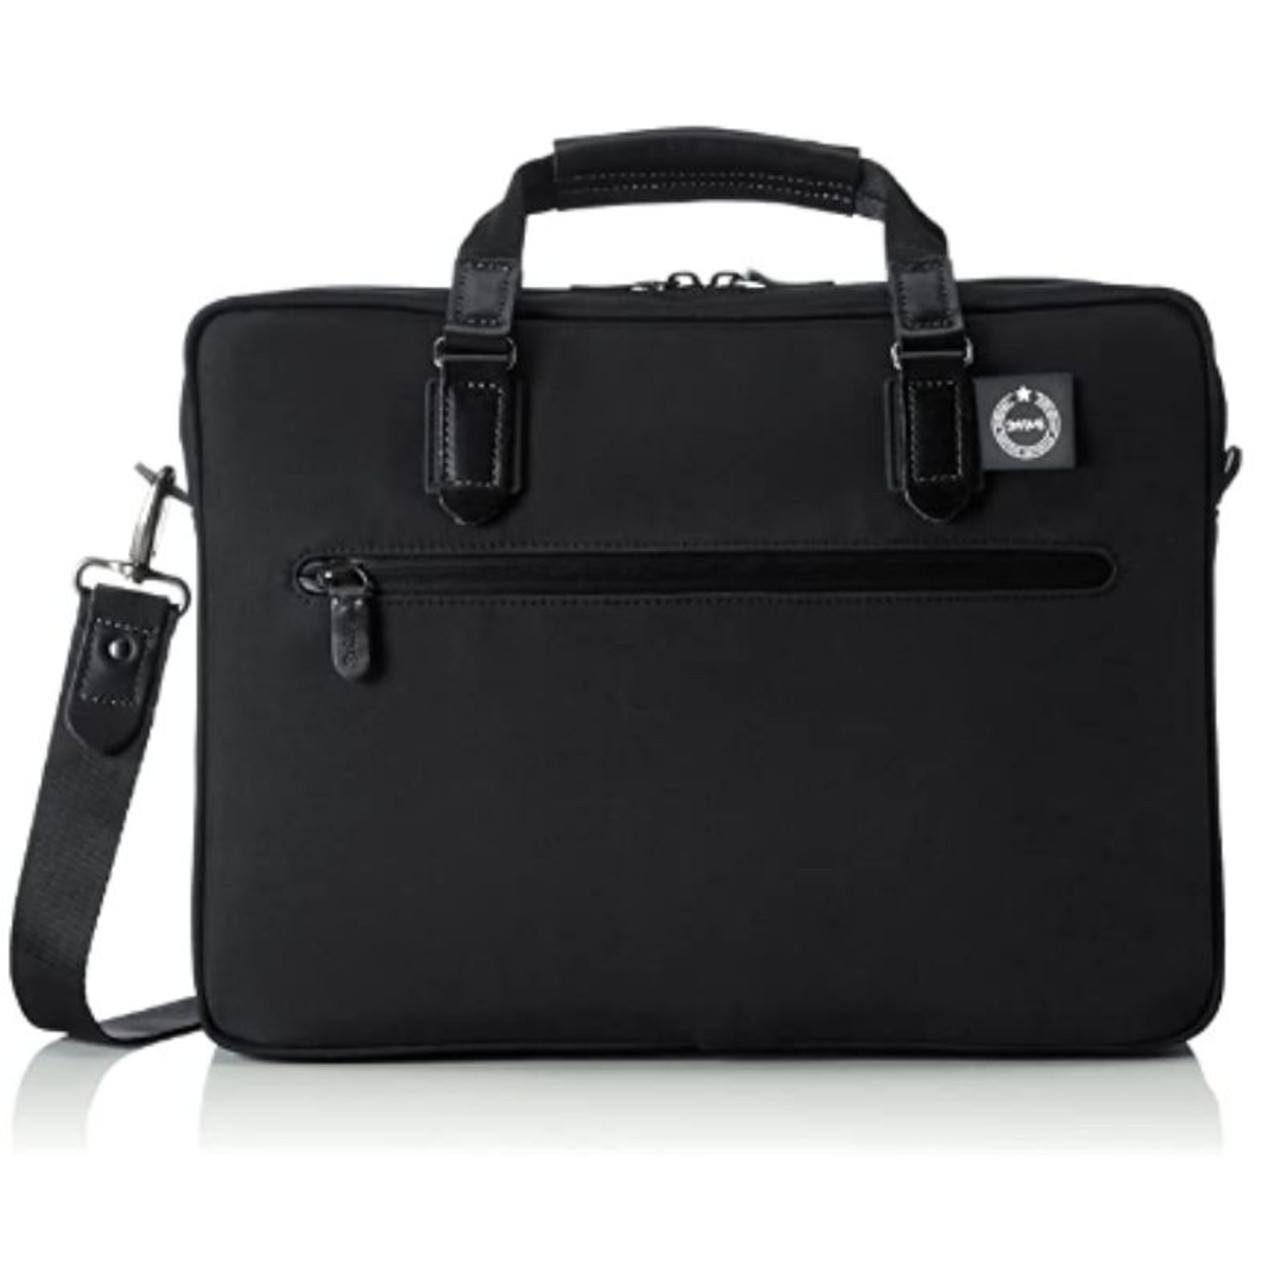 15.6 Inch Water Proof and Resistant Fashionable Briefcase Computer Bag